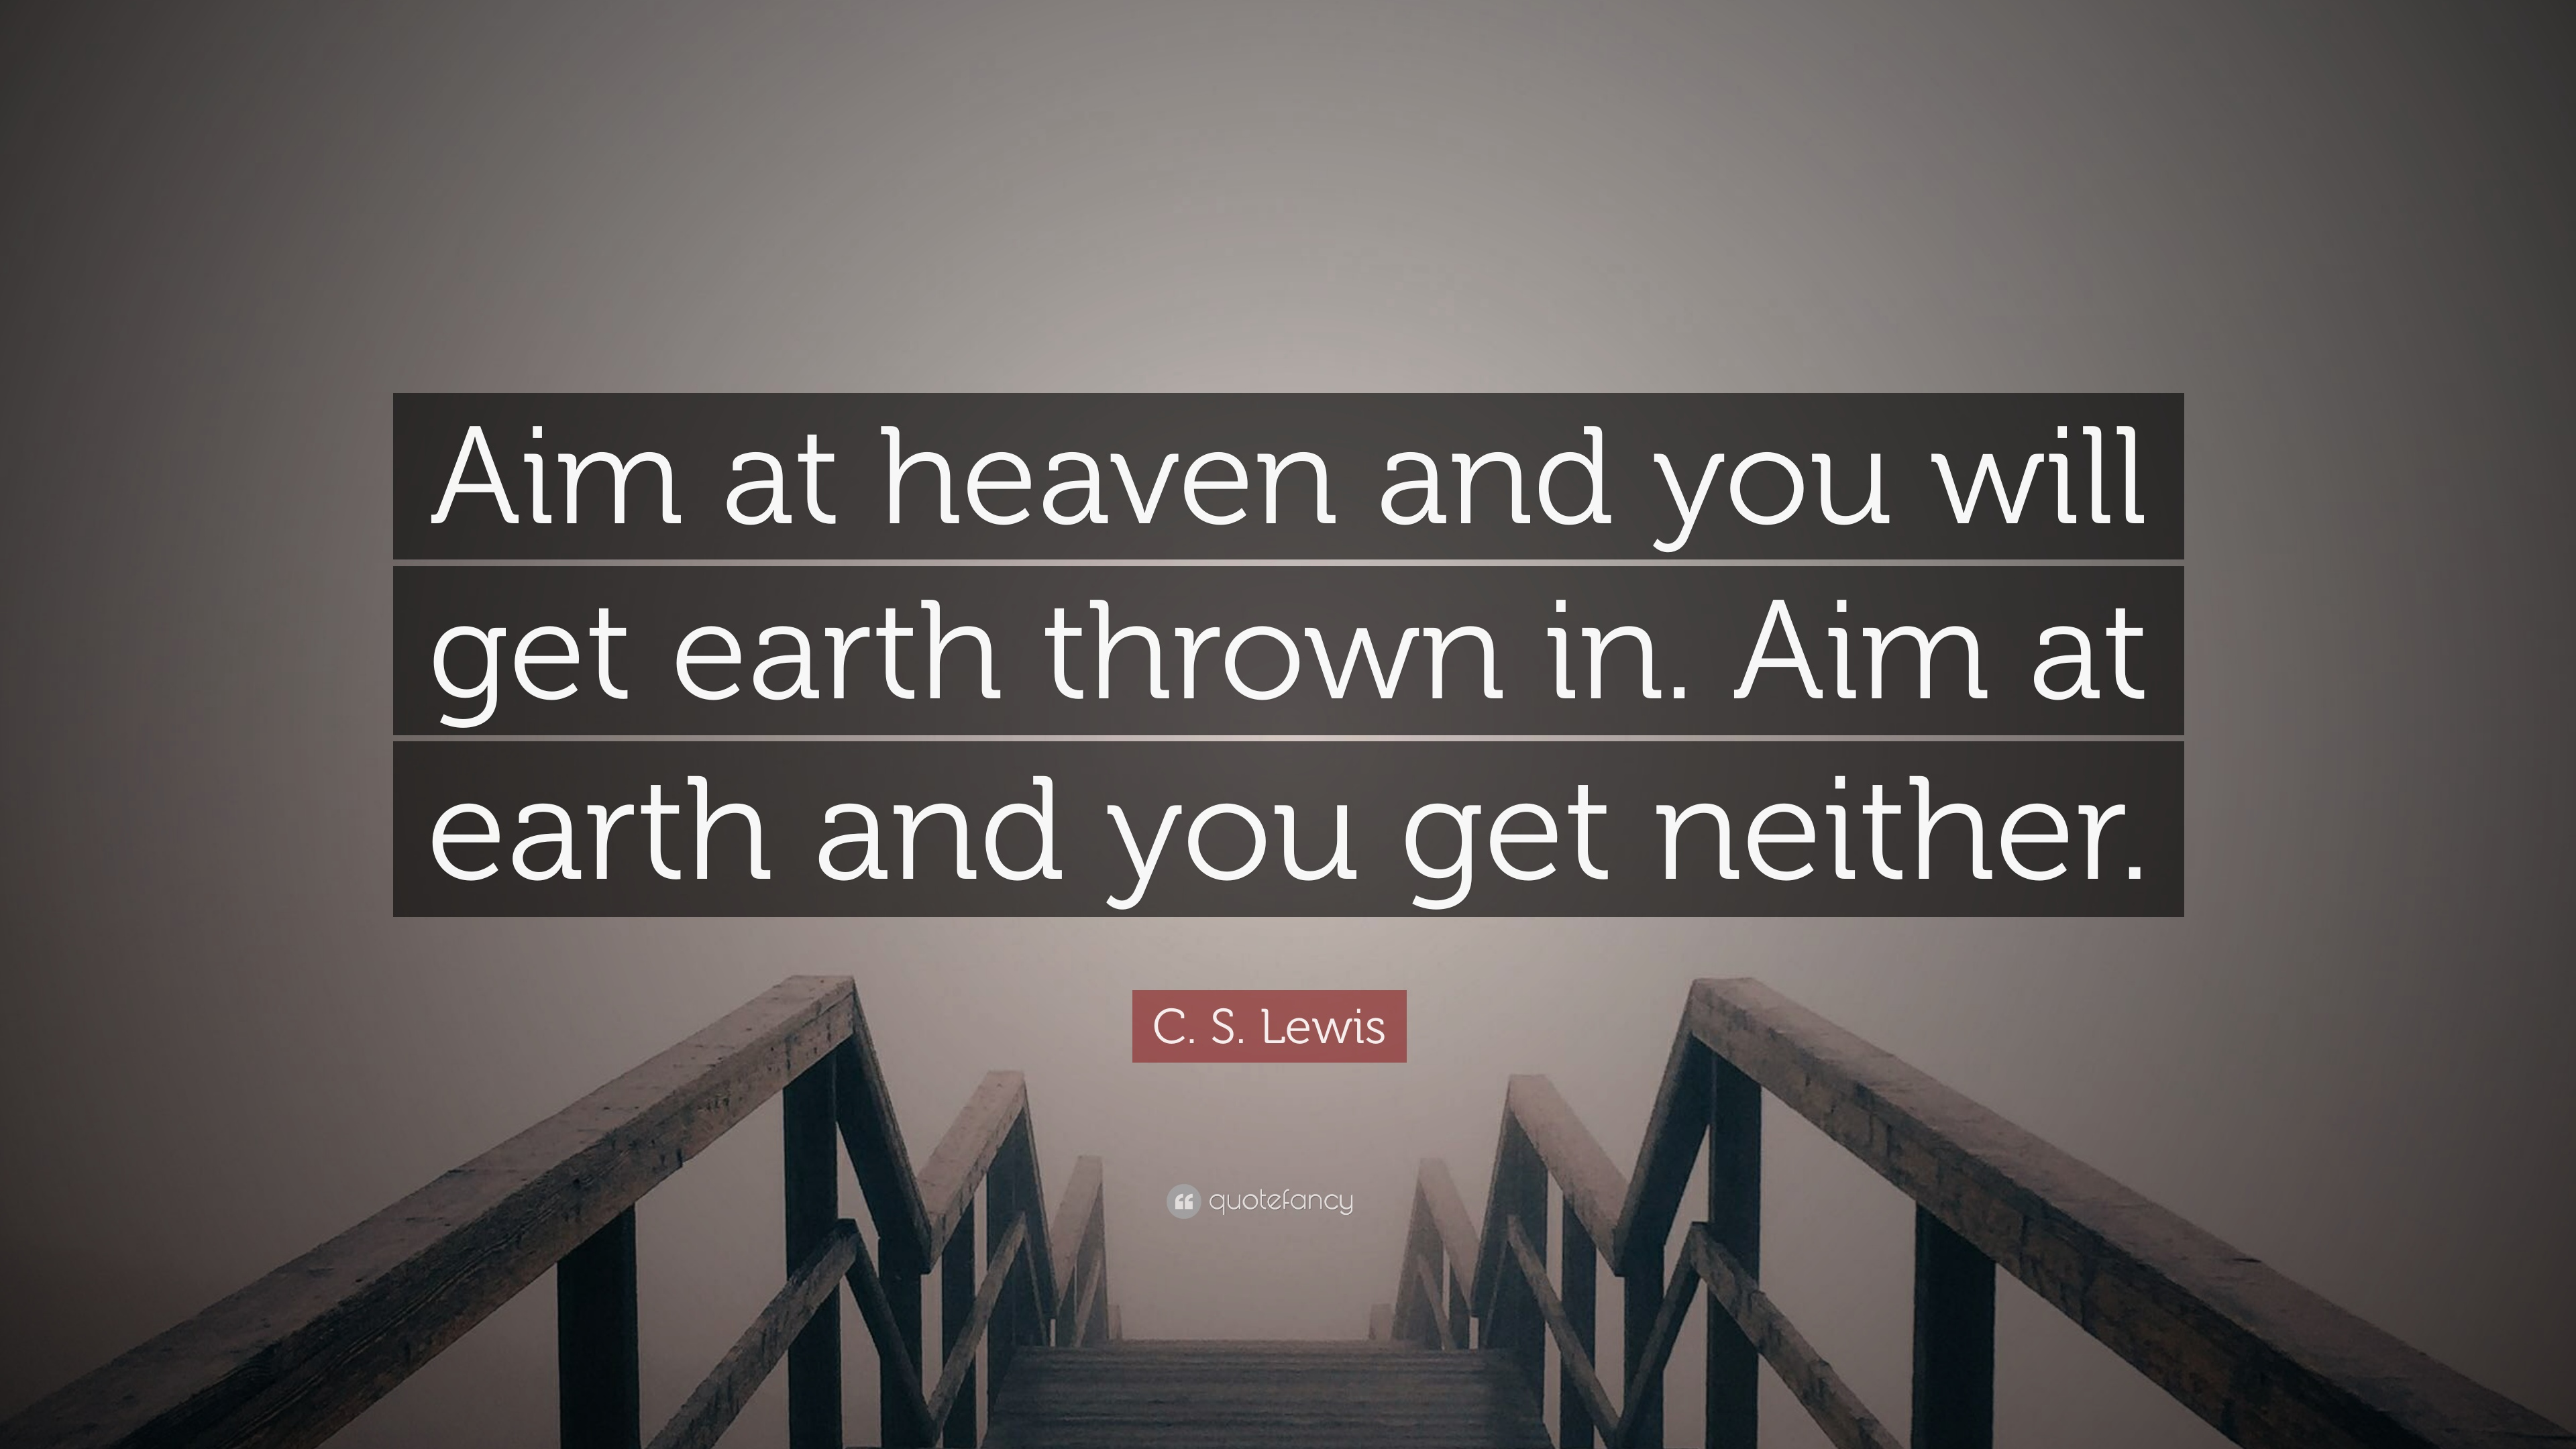 C S Lewis Quote Aim At Heaven And You Will Get Earth Thrown In